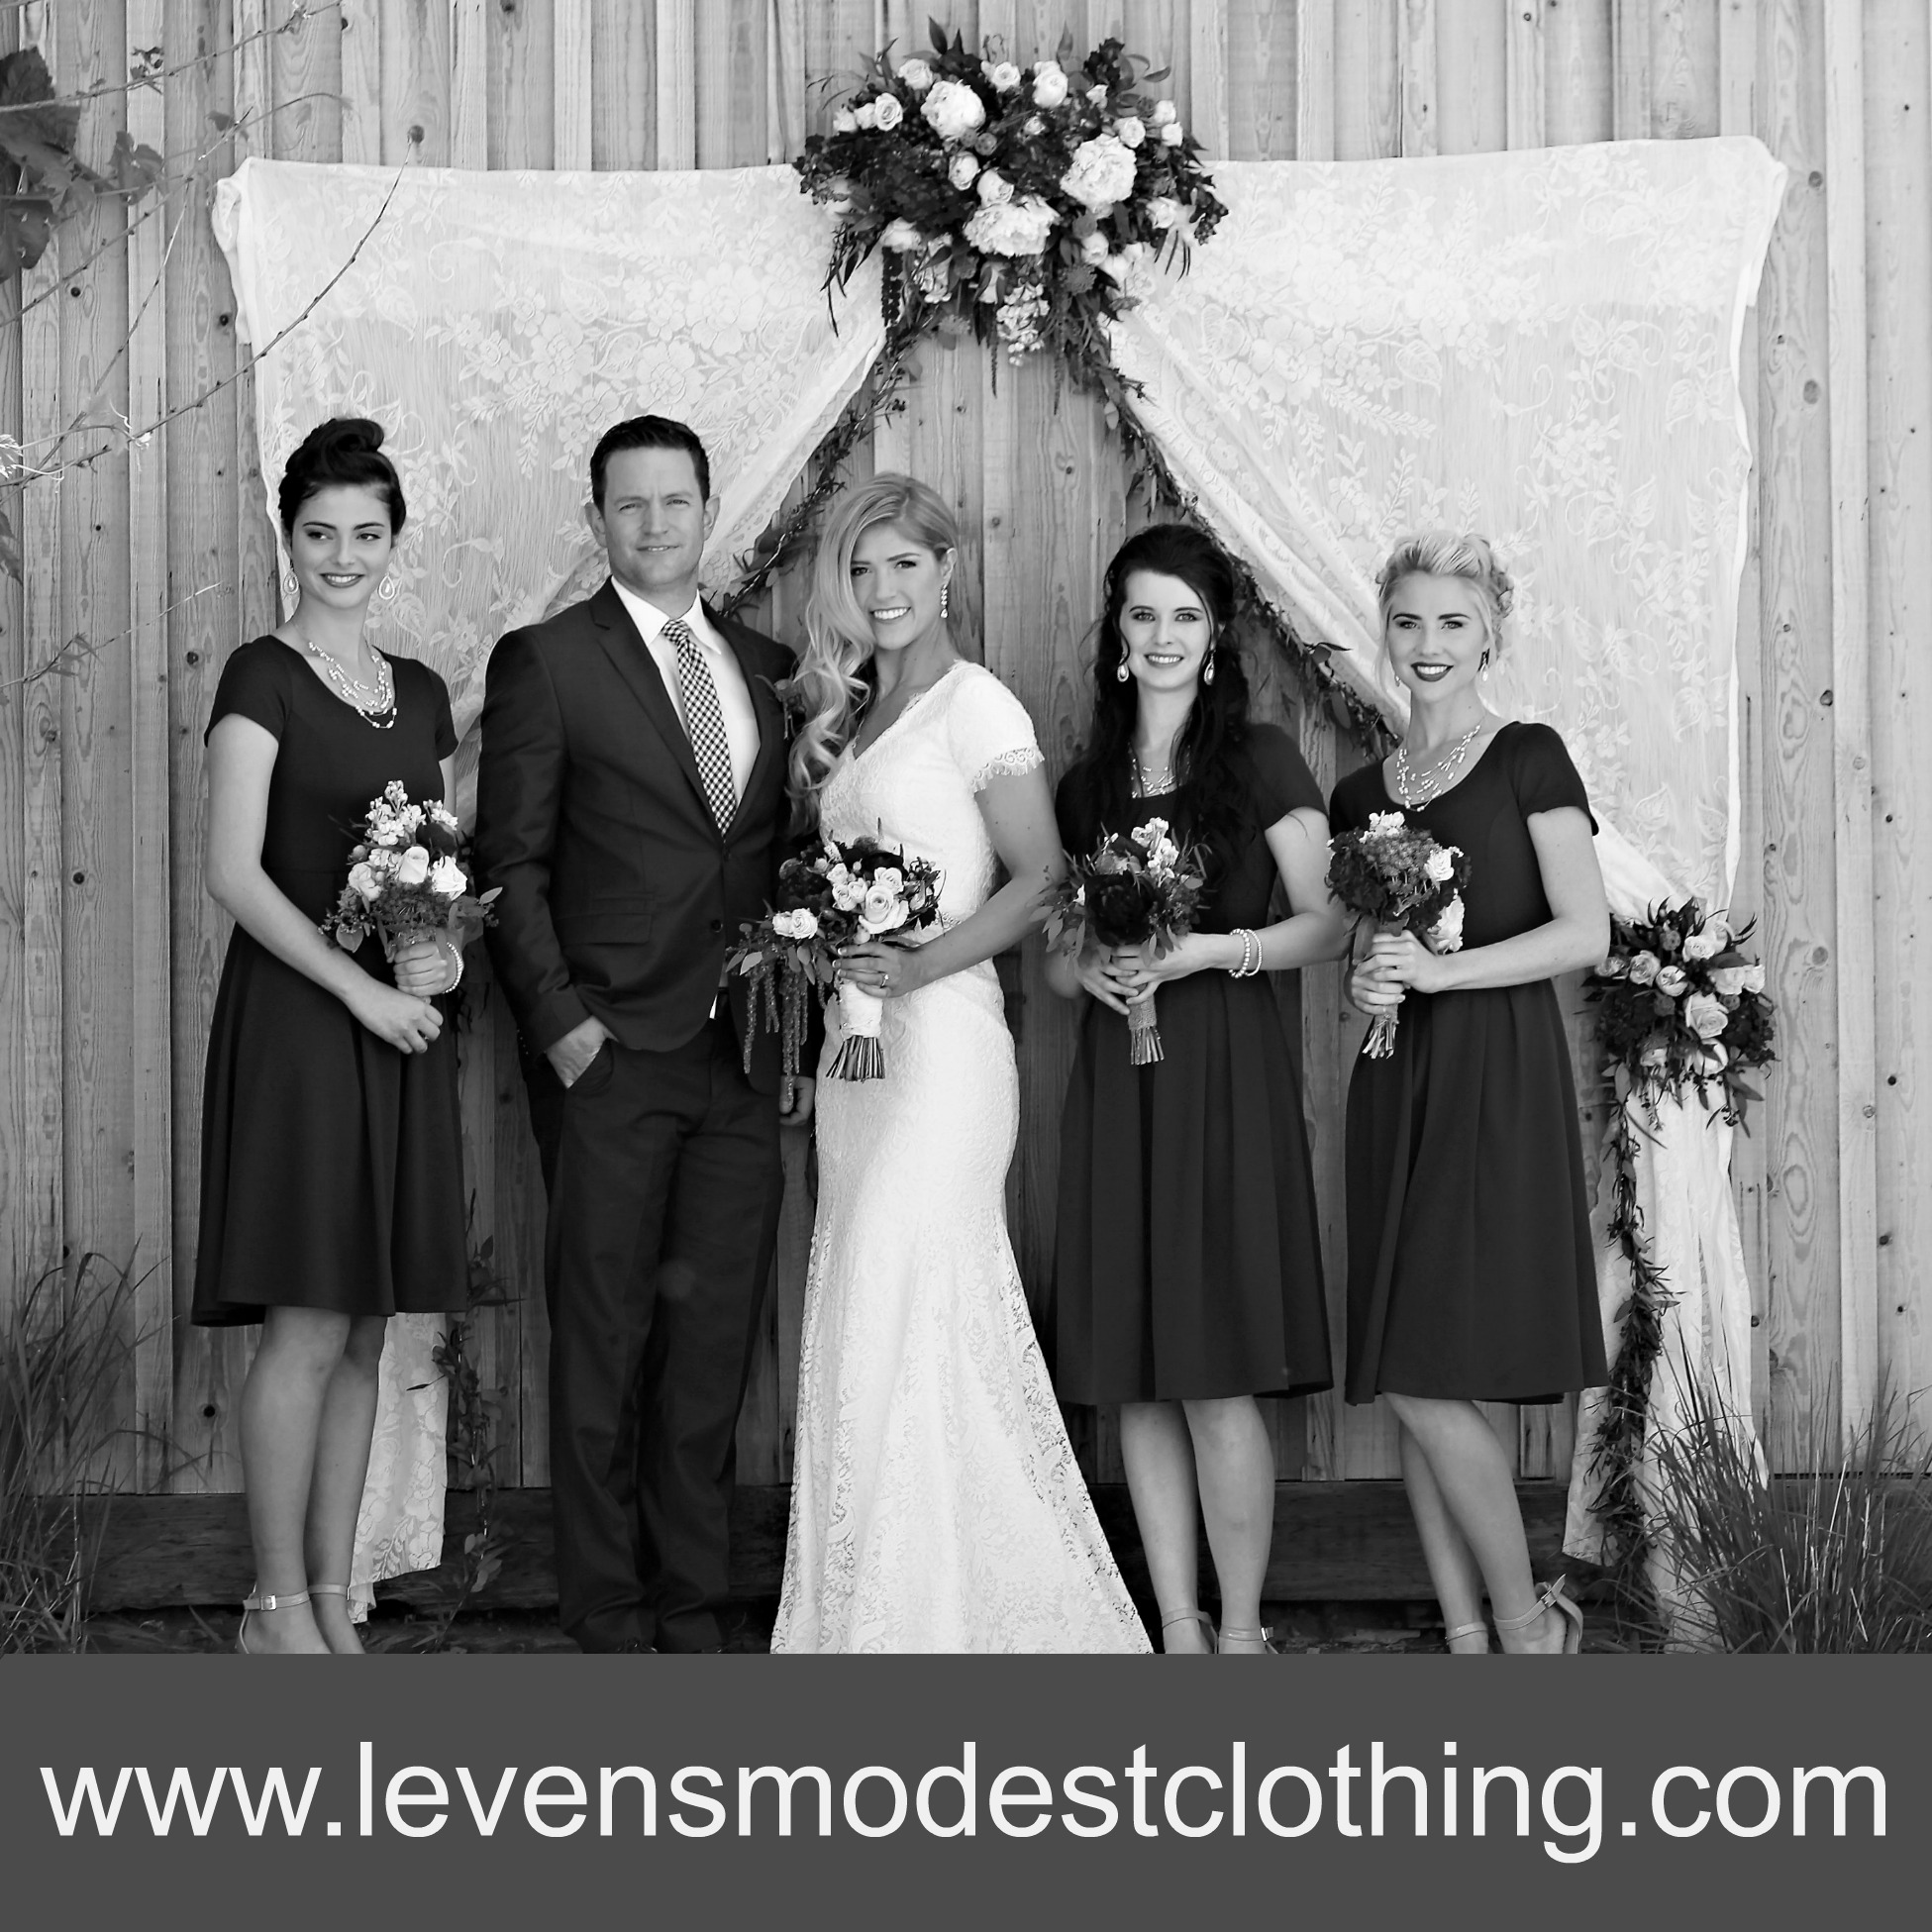 Weddings  at Leven's